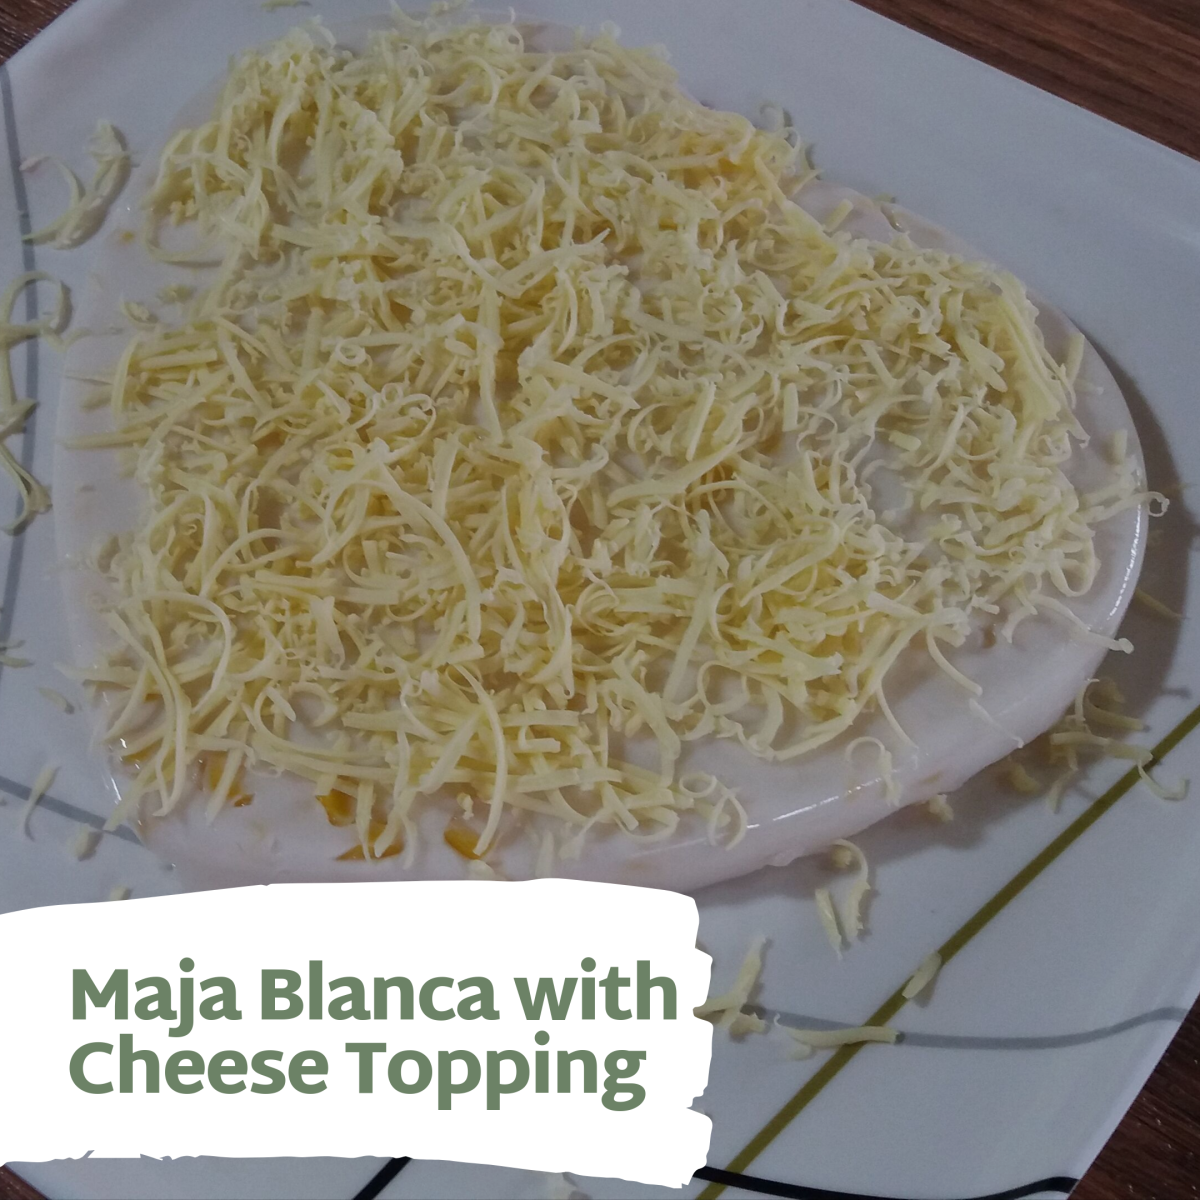 Maja blanca with cheesy topping